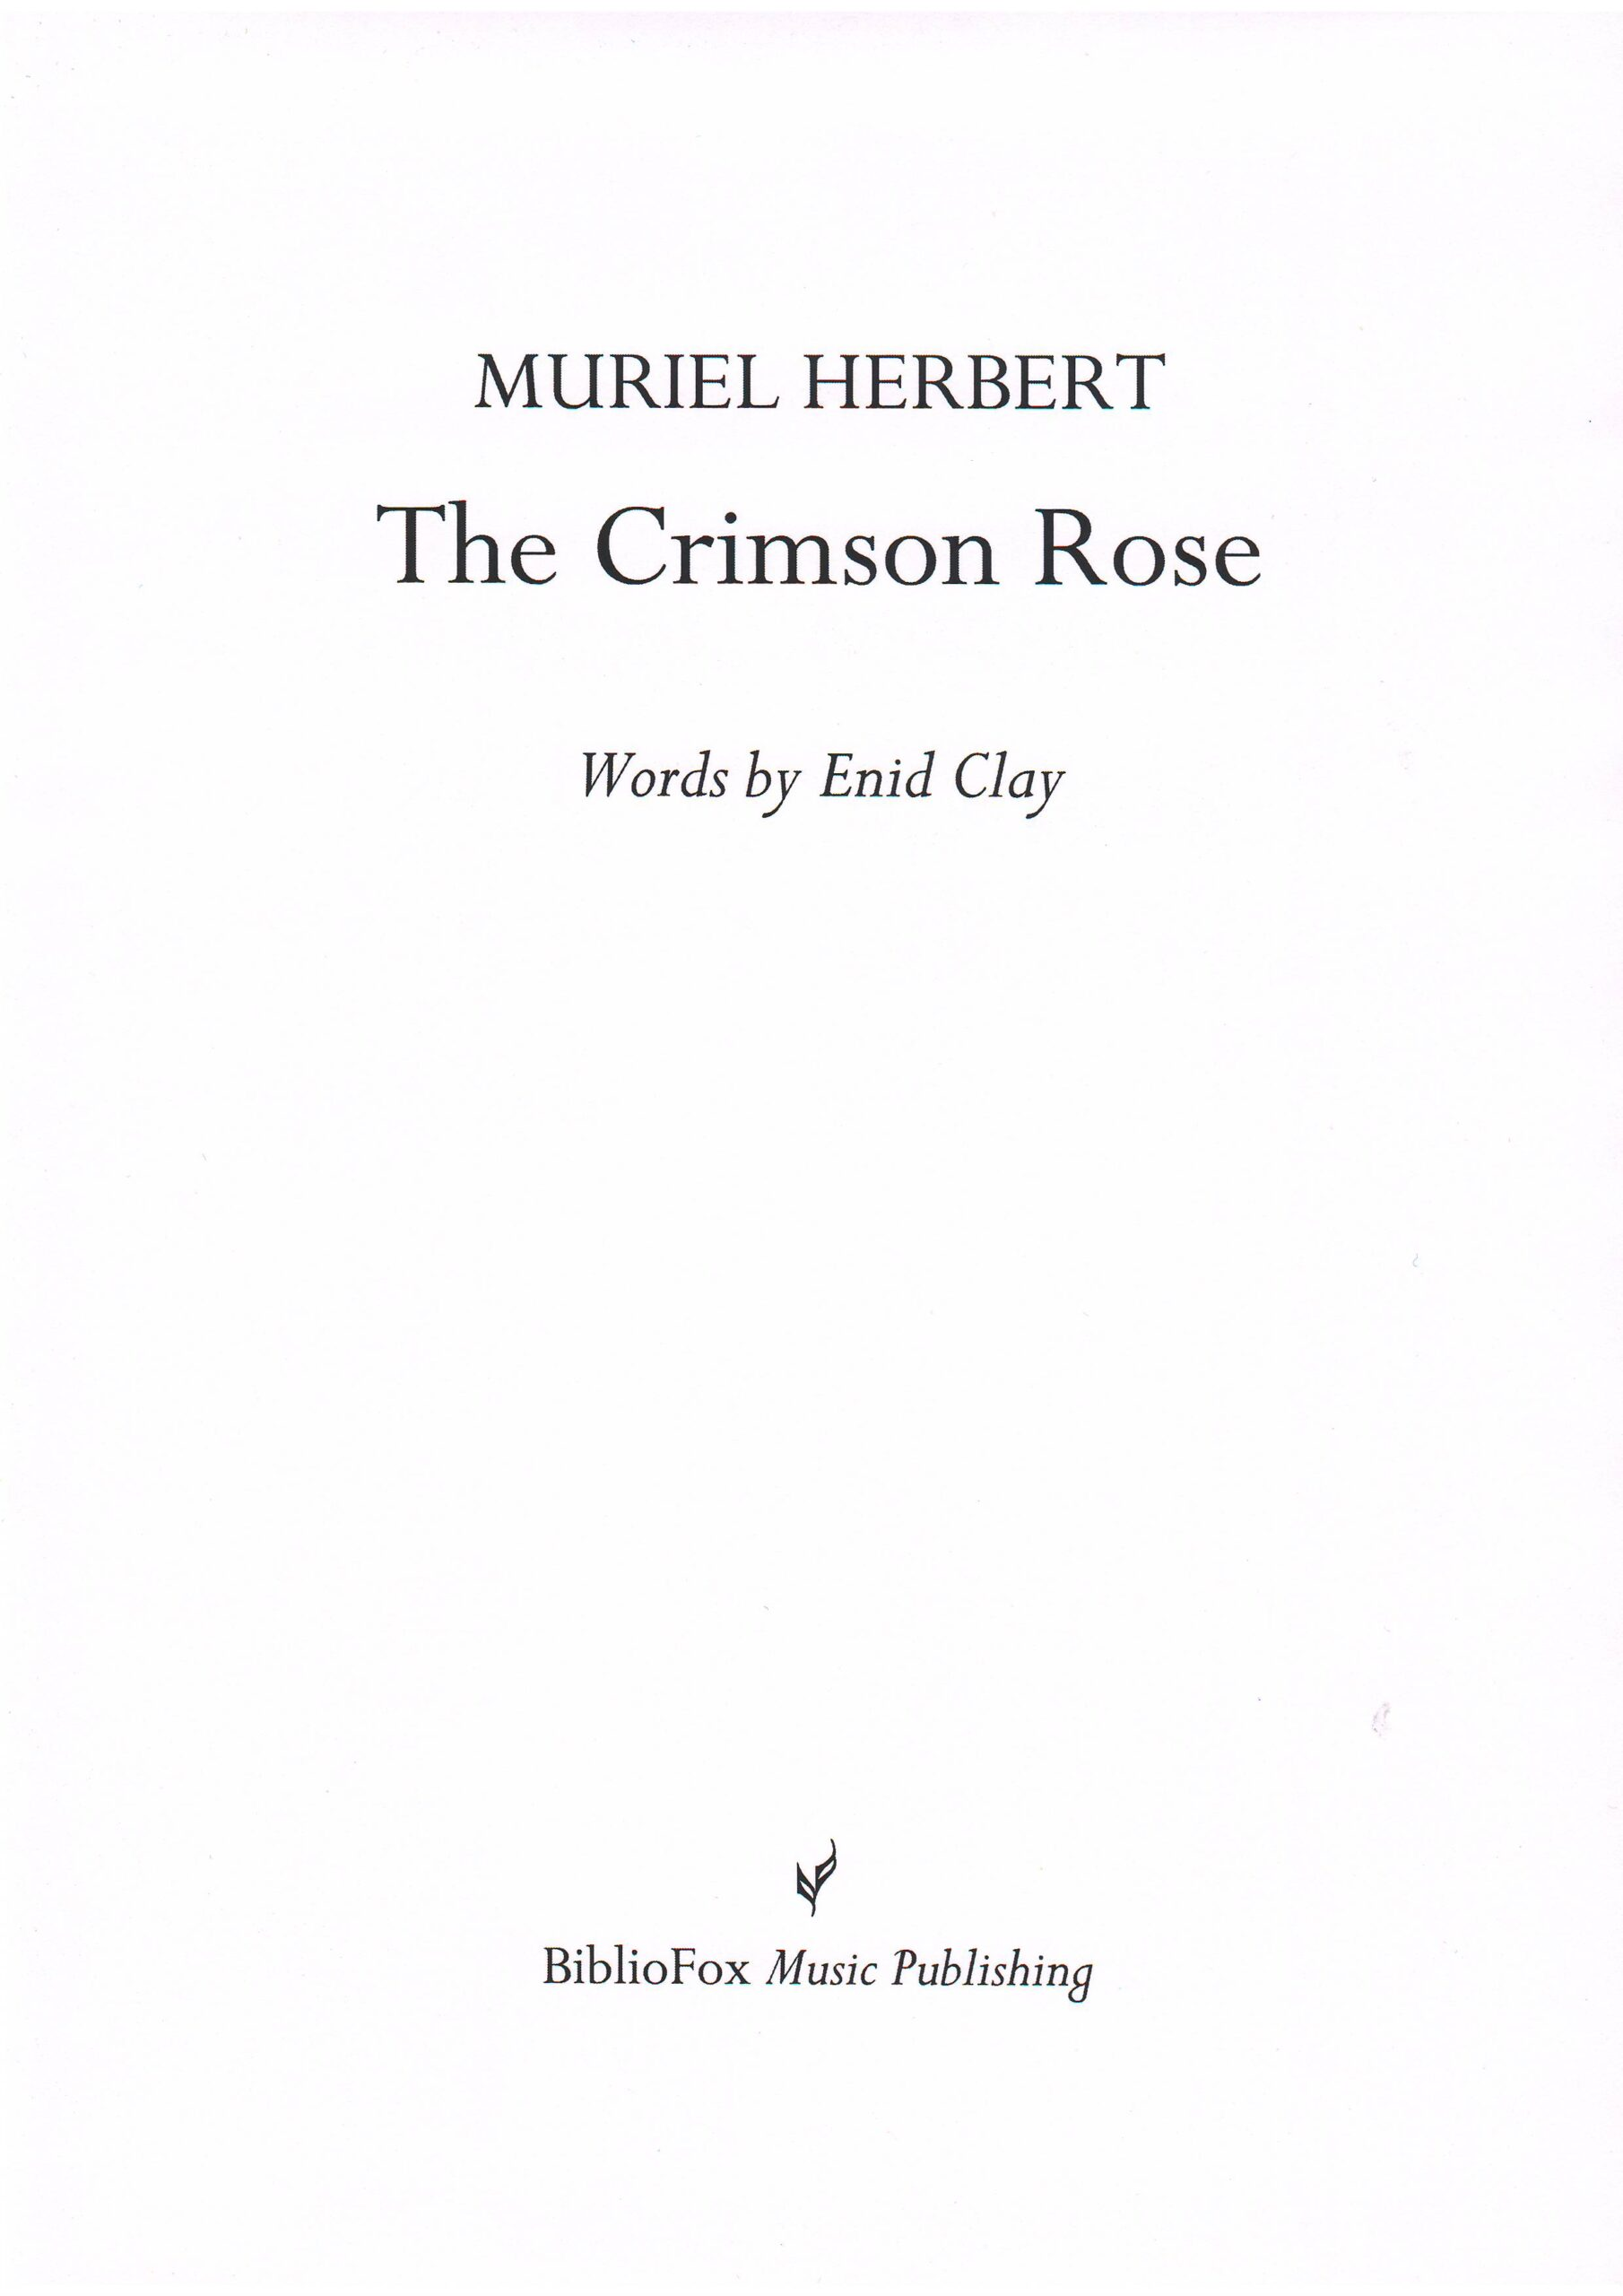 Cover page of Herbert The Crimson Rose